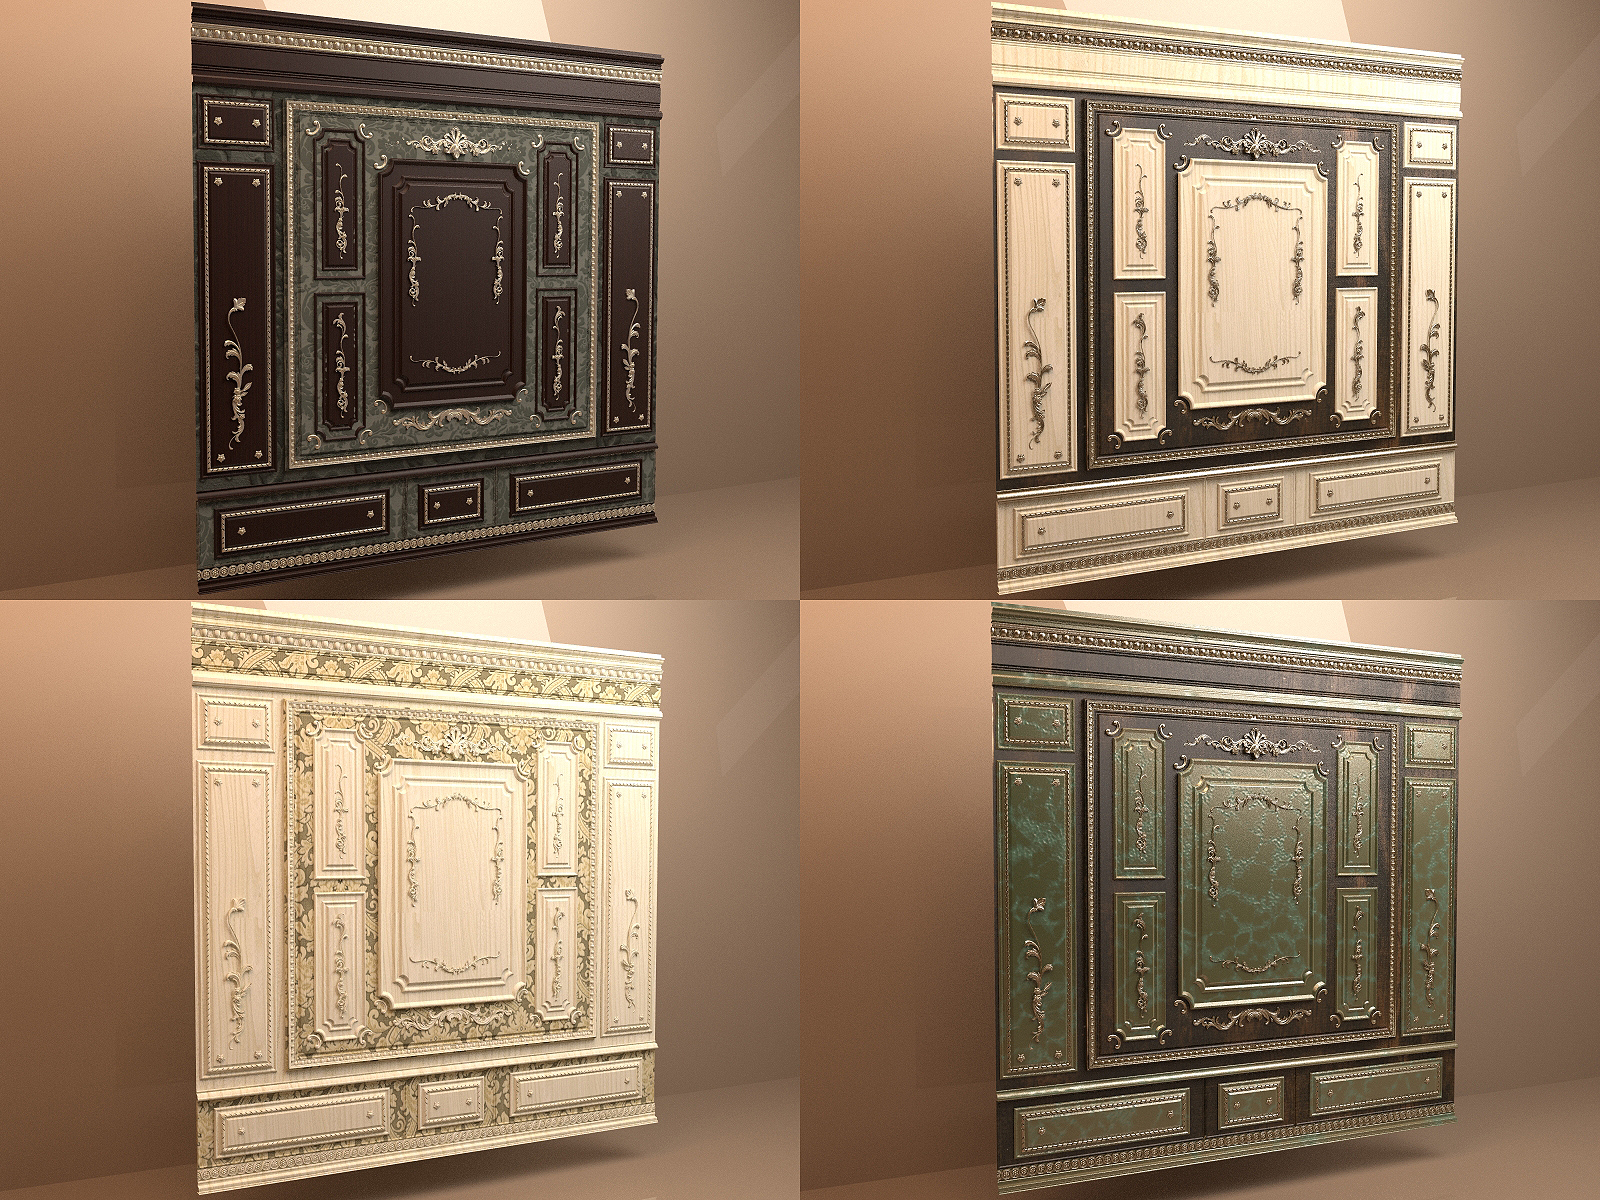 Source geometry for ornate wall   CLICK FOR FULL SIZE